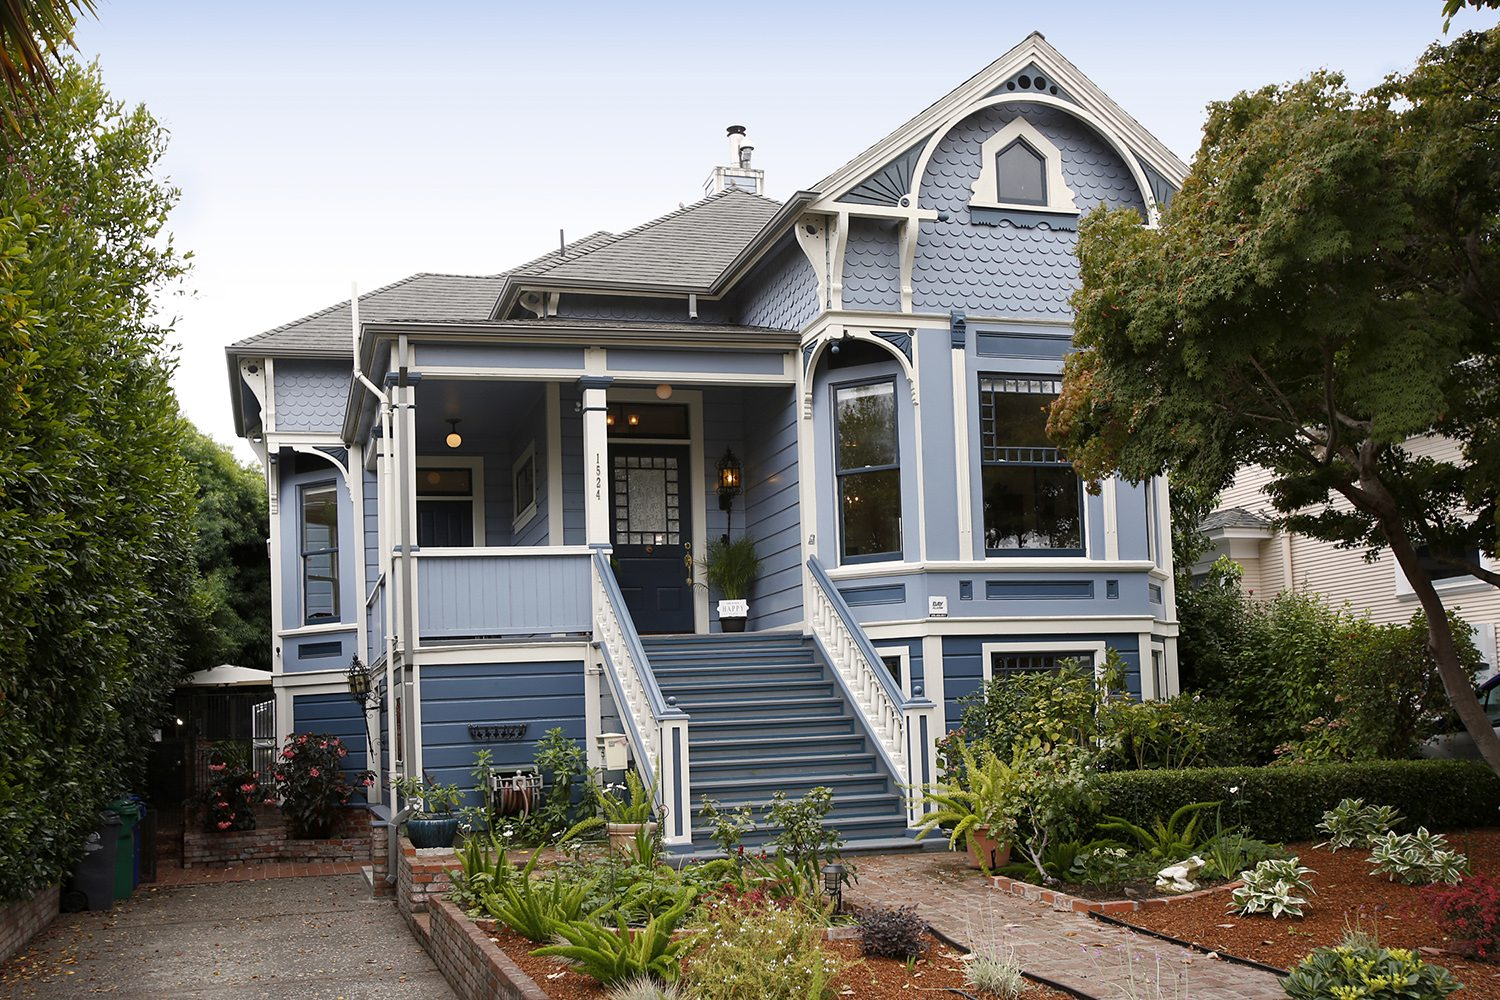 Italianate Victorian Style This Exceptional Santa Cruz Landmark Property Exudes Charm Character And History With Beautiful Wood Work High Ceilings